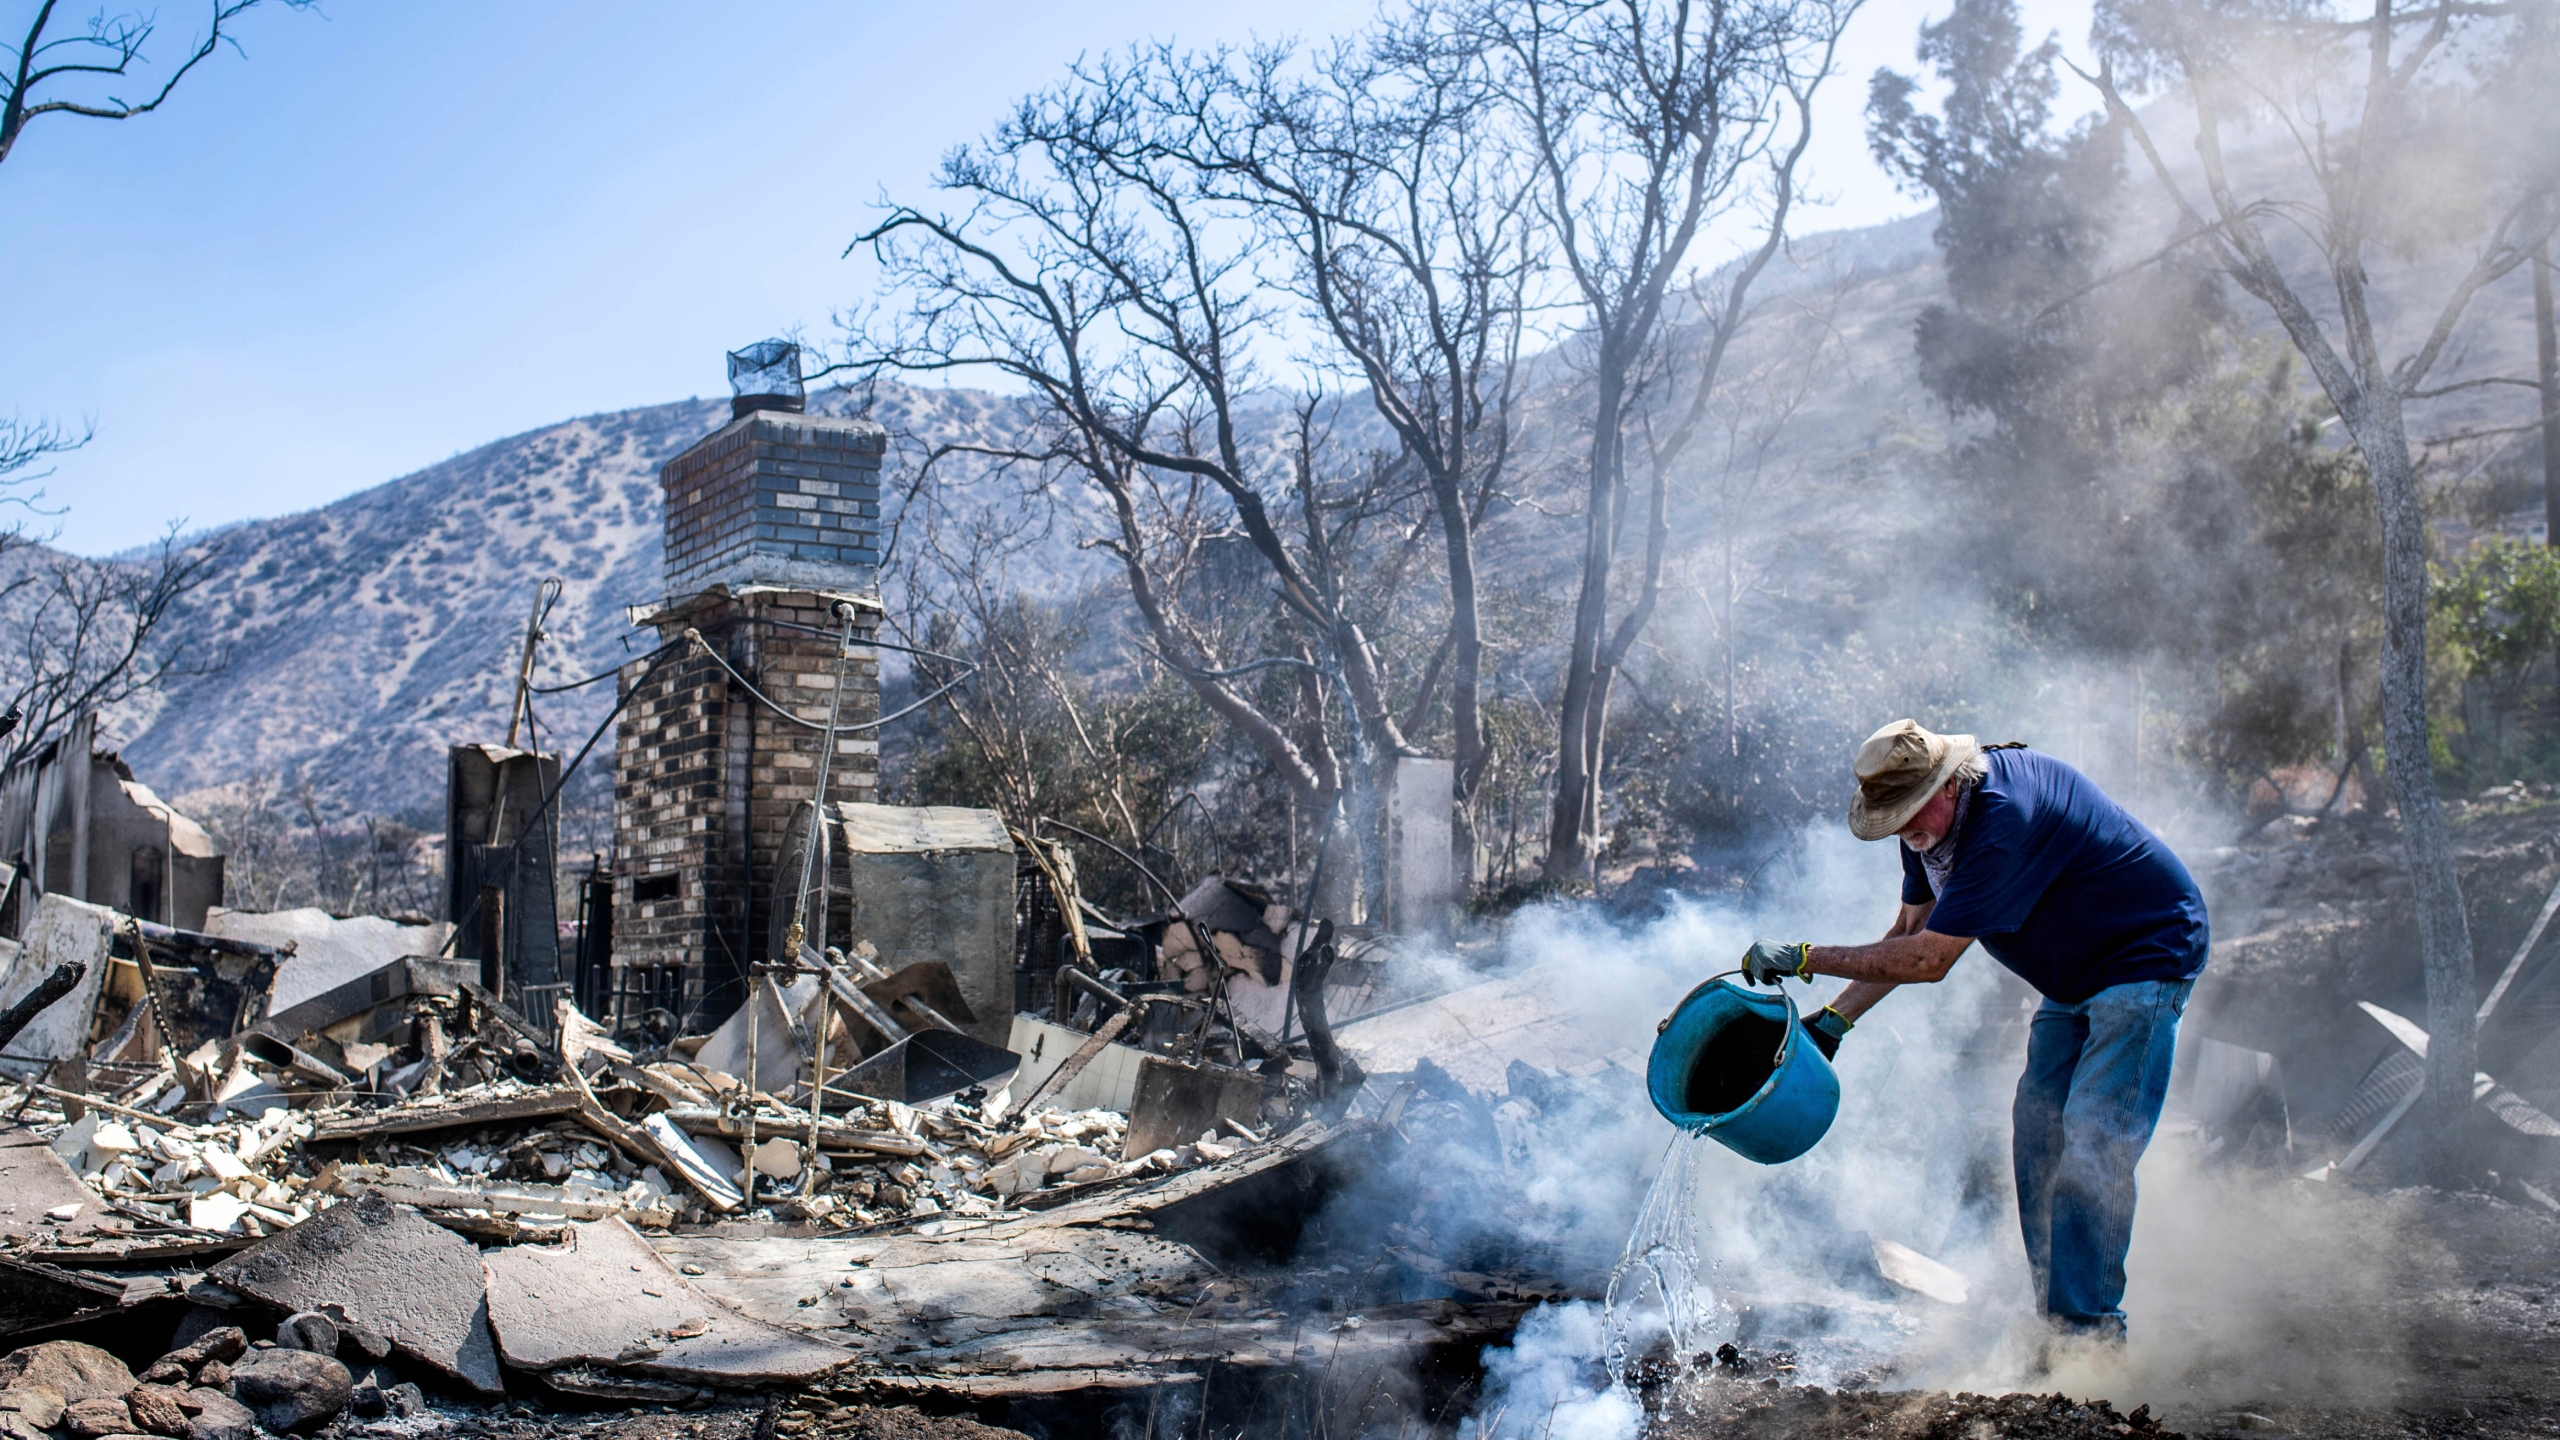 Dale Burton, of Leona Valley, tries to put out the fire that continues to smolder at his friend Cheryl Poindexter's property on Monday, Sept. 21, 2020, after the Bobcat Fire burned her home of 27 years and the 11-acre property where she ran an animal rescue in Juniper Hills. (Sarah Reingewirtz/The Orange County Register via AP)